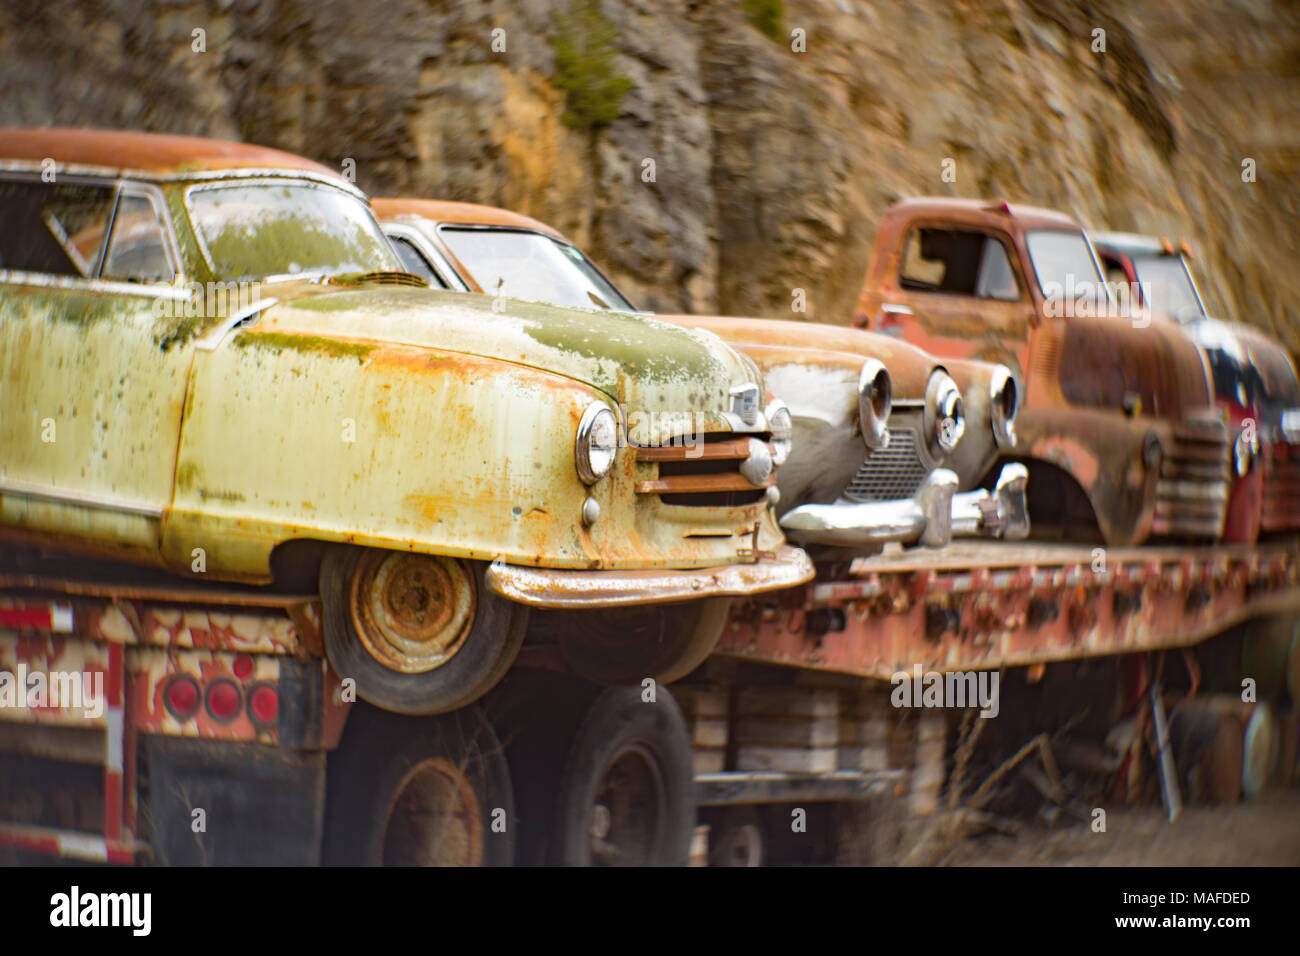 A 1951 Nash Rambler Country Club 2-door hardtop, on a flatbed semi trailer, in a stone quarry, east of Clark Fork, Idaho. - Stock Image